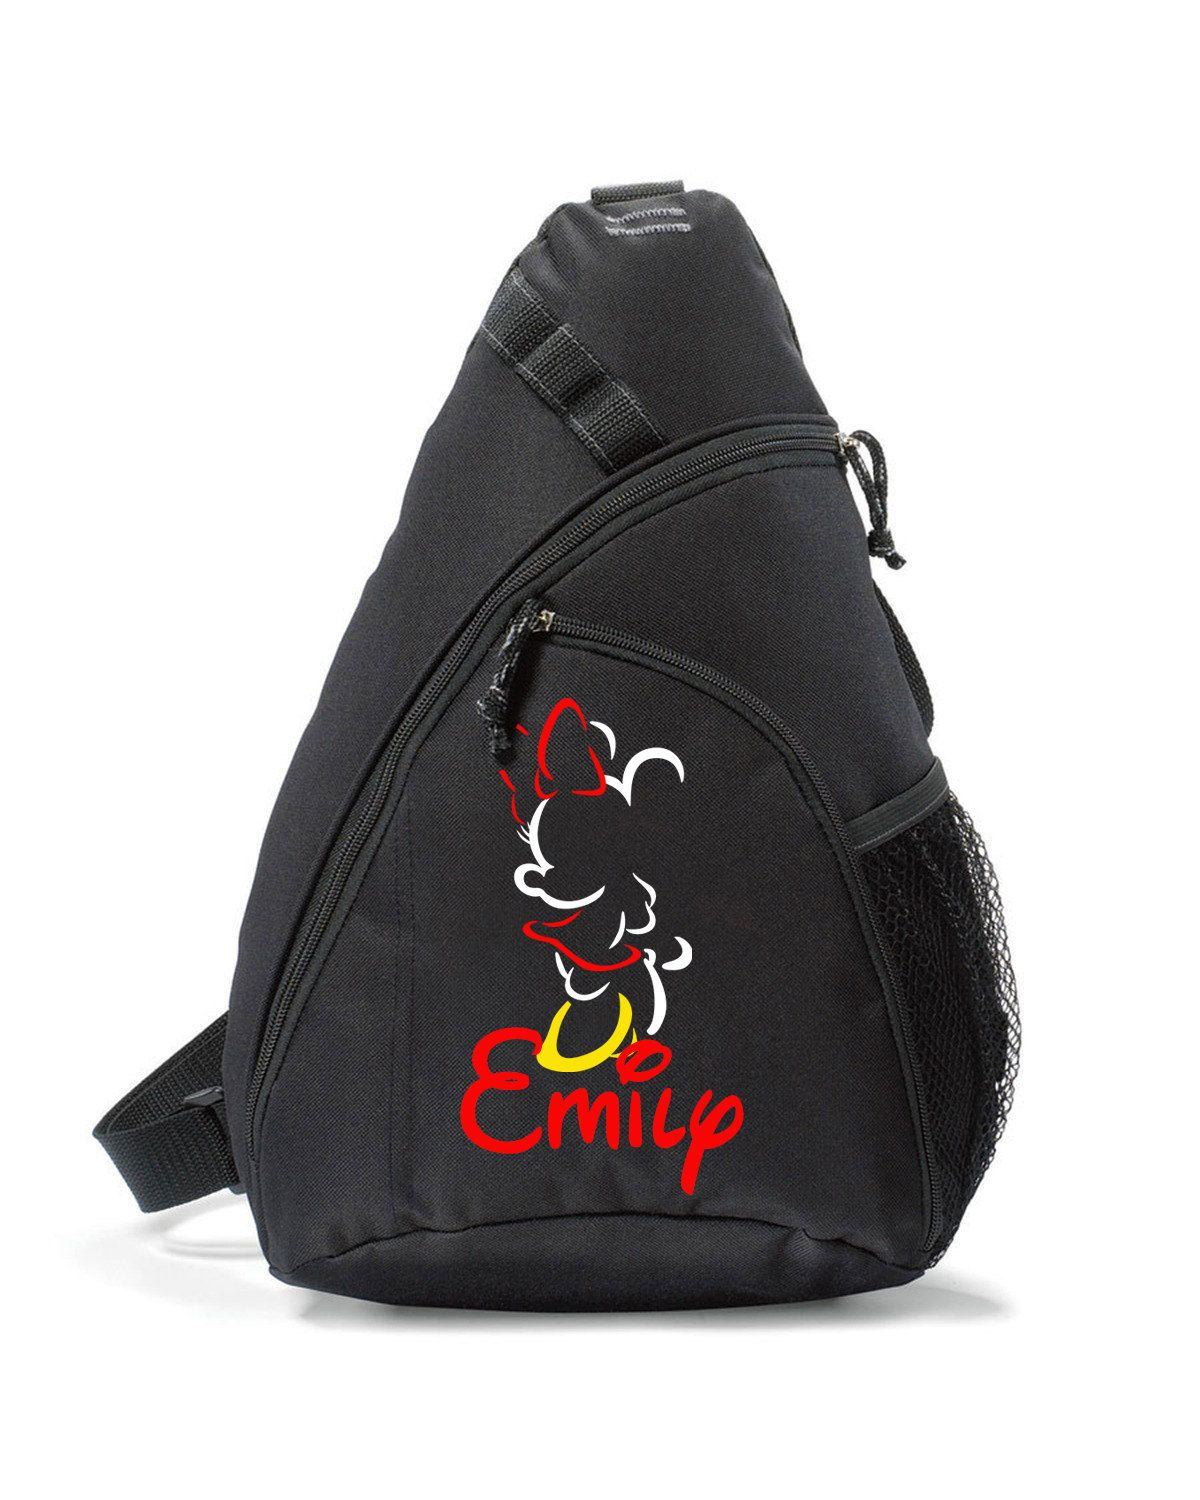 Minnie Mouse Bag,Personalized,Sling bag,Disney Bag,Minnie Mouse Sling Bag,Minnie Mouse,Disney Backpack,Sling Bag Backpack,Minnie Backpack